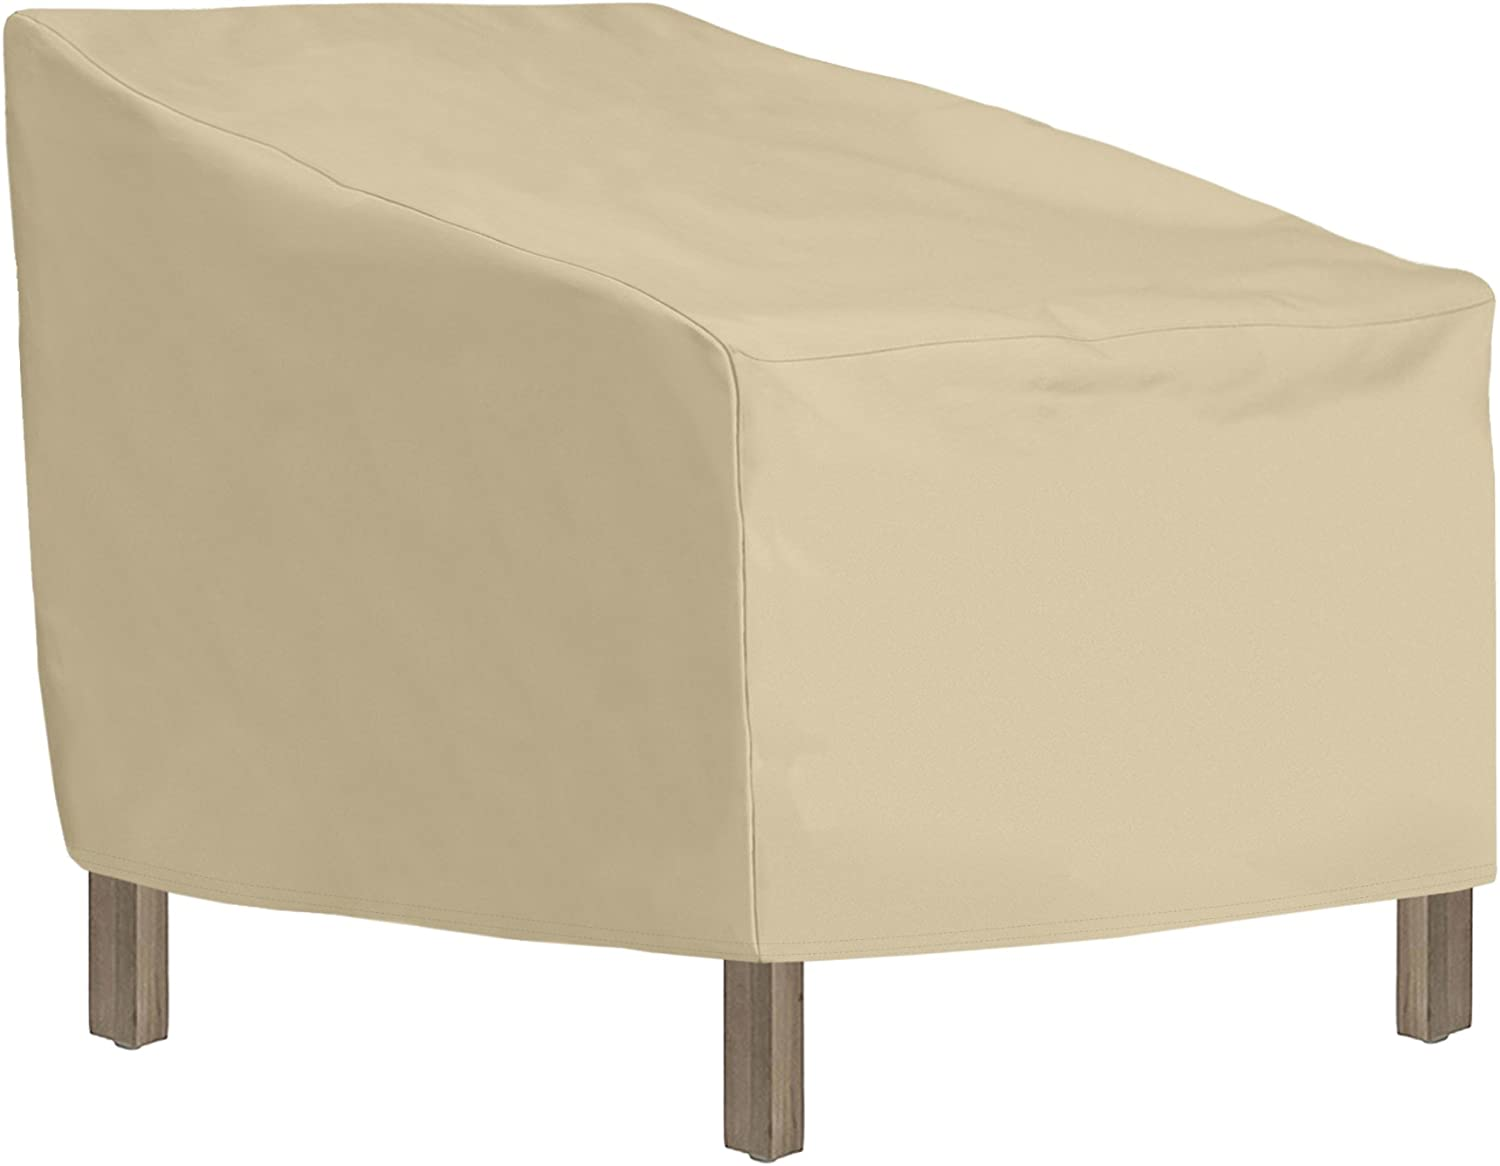 SunPatio Outdoor Club Chair Cover, Heavy Duty Waterproof Lounge Chair Cover, Patio Furniture Cover 34 L x 37 W x 36 25 H, Durable and All Weather Protector, Beige